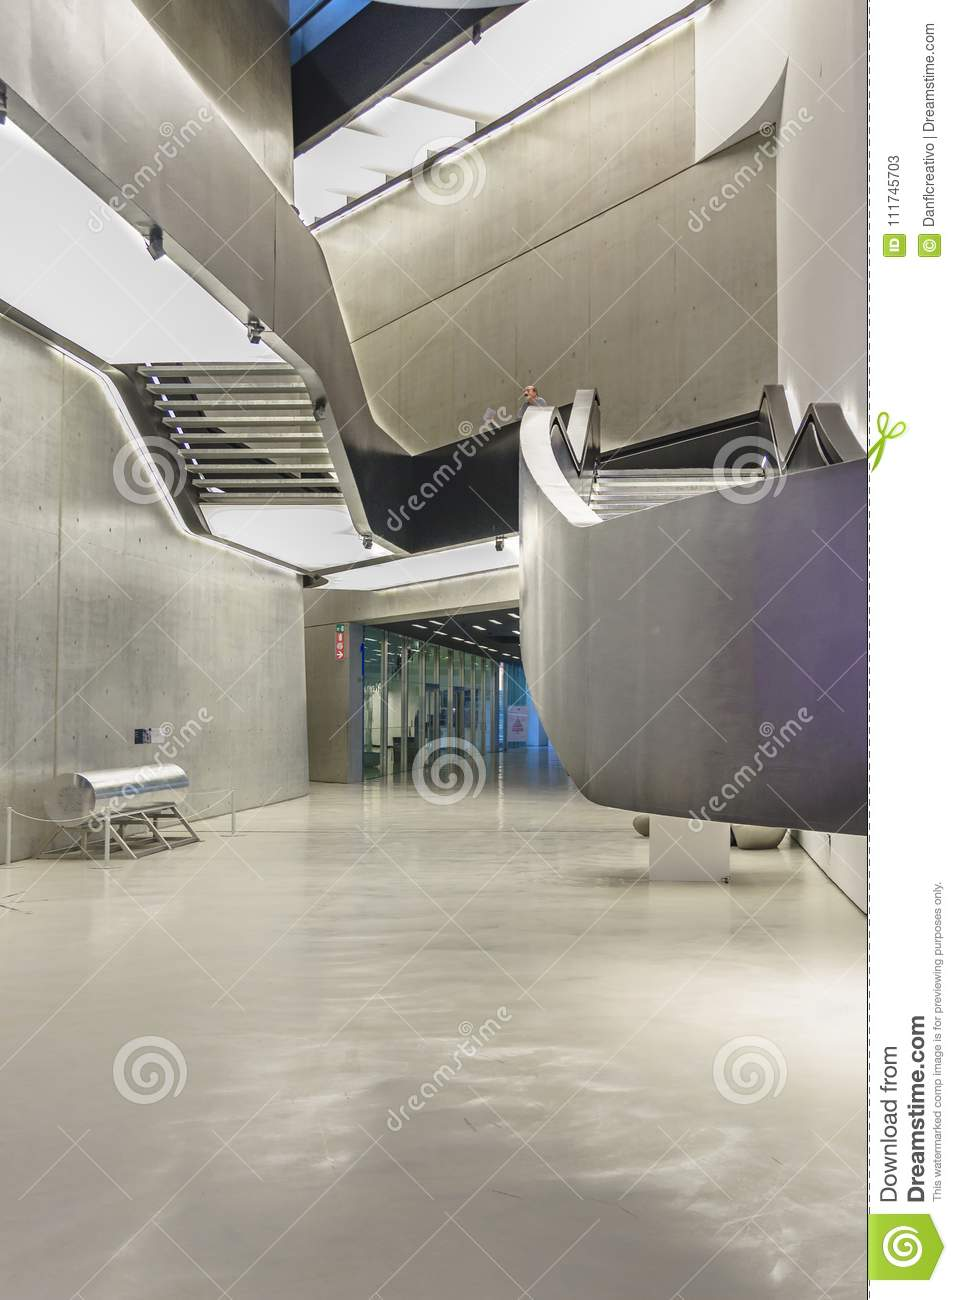 National Gallery Of Modern And Contemporary Art Art Museums Rome